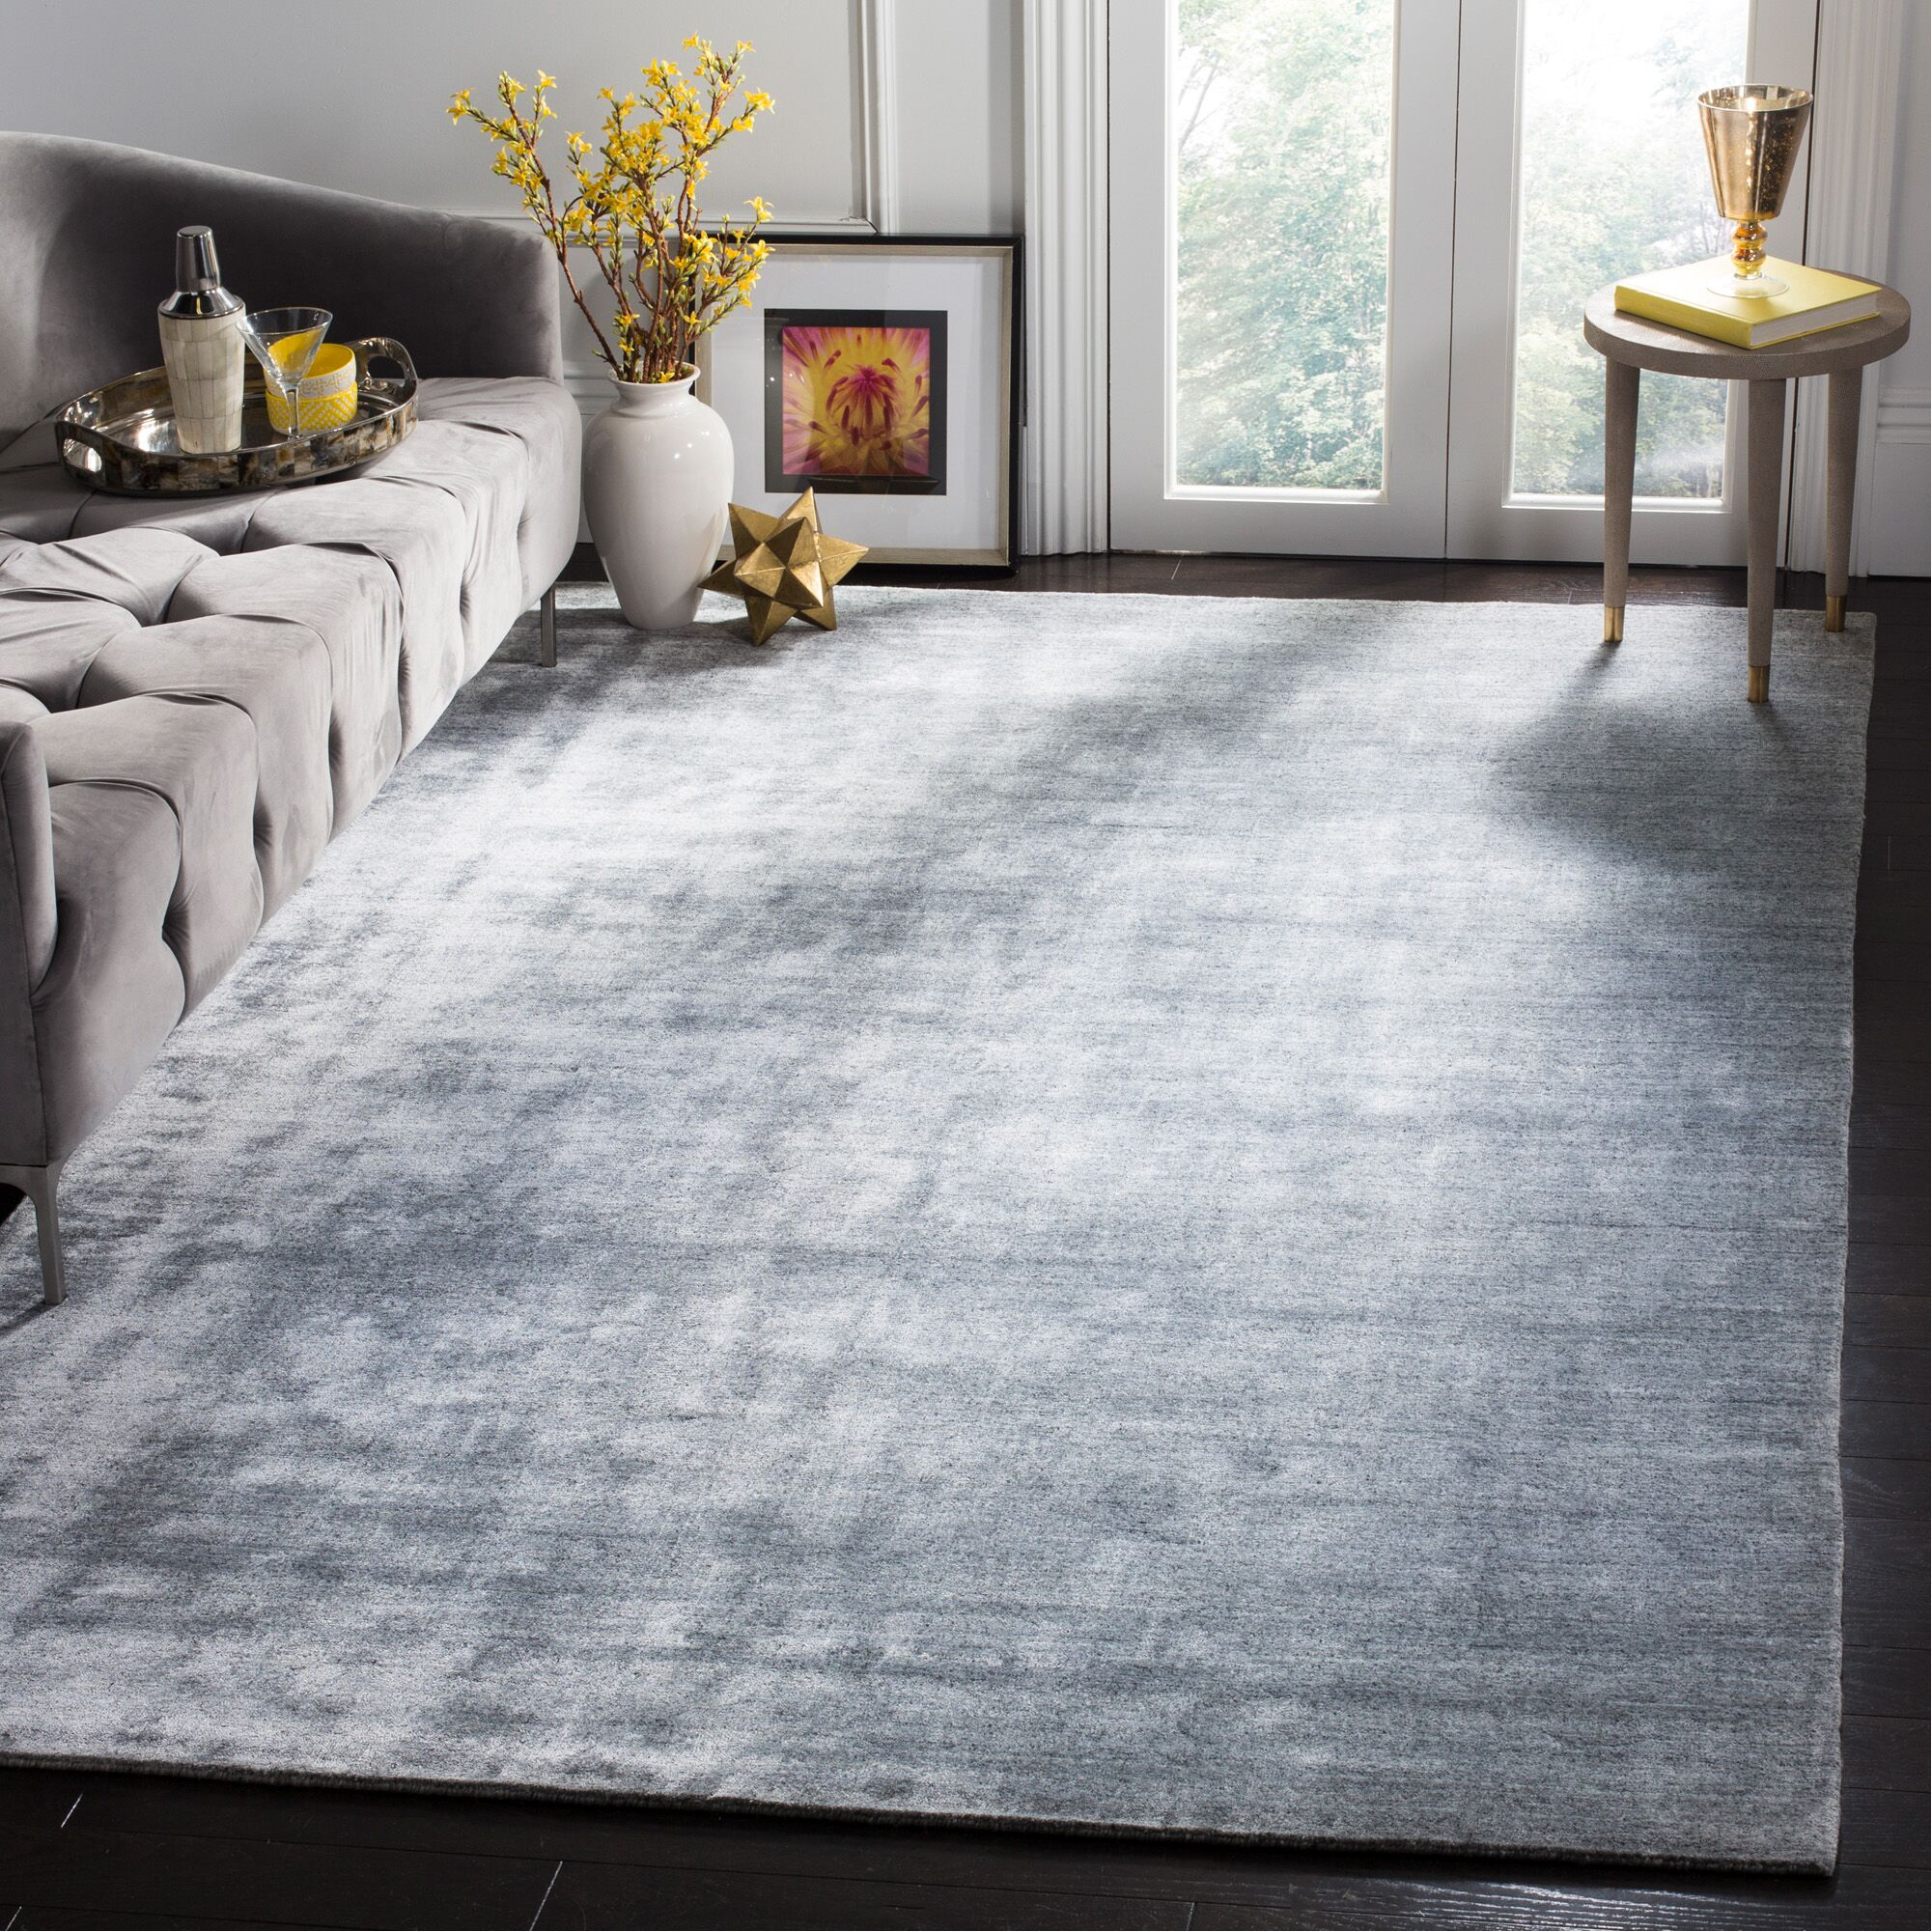 Wald Hand-Woven Light Gray Area Rug Rug Size: Rectangle 6' x 9'